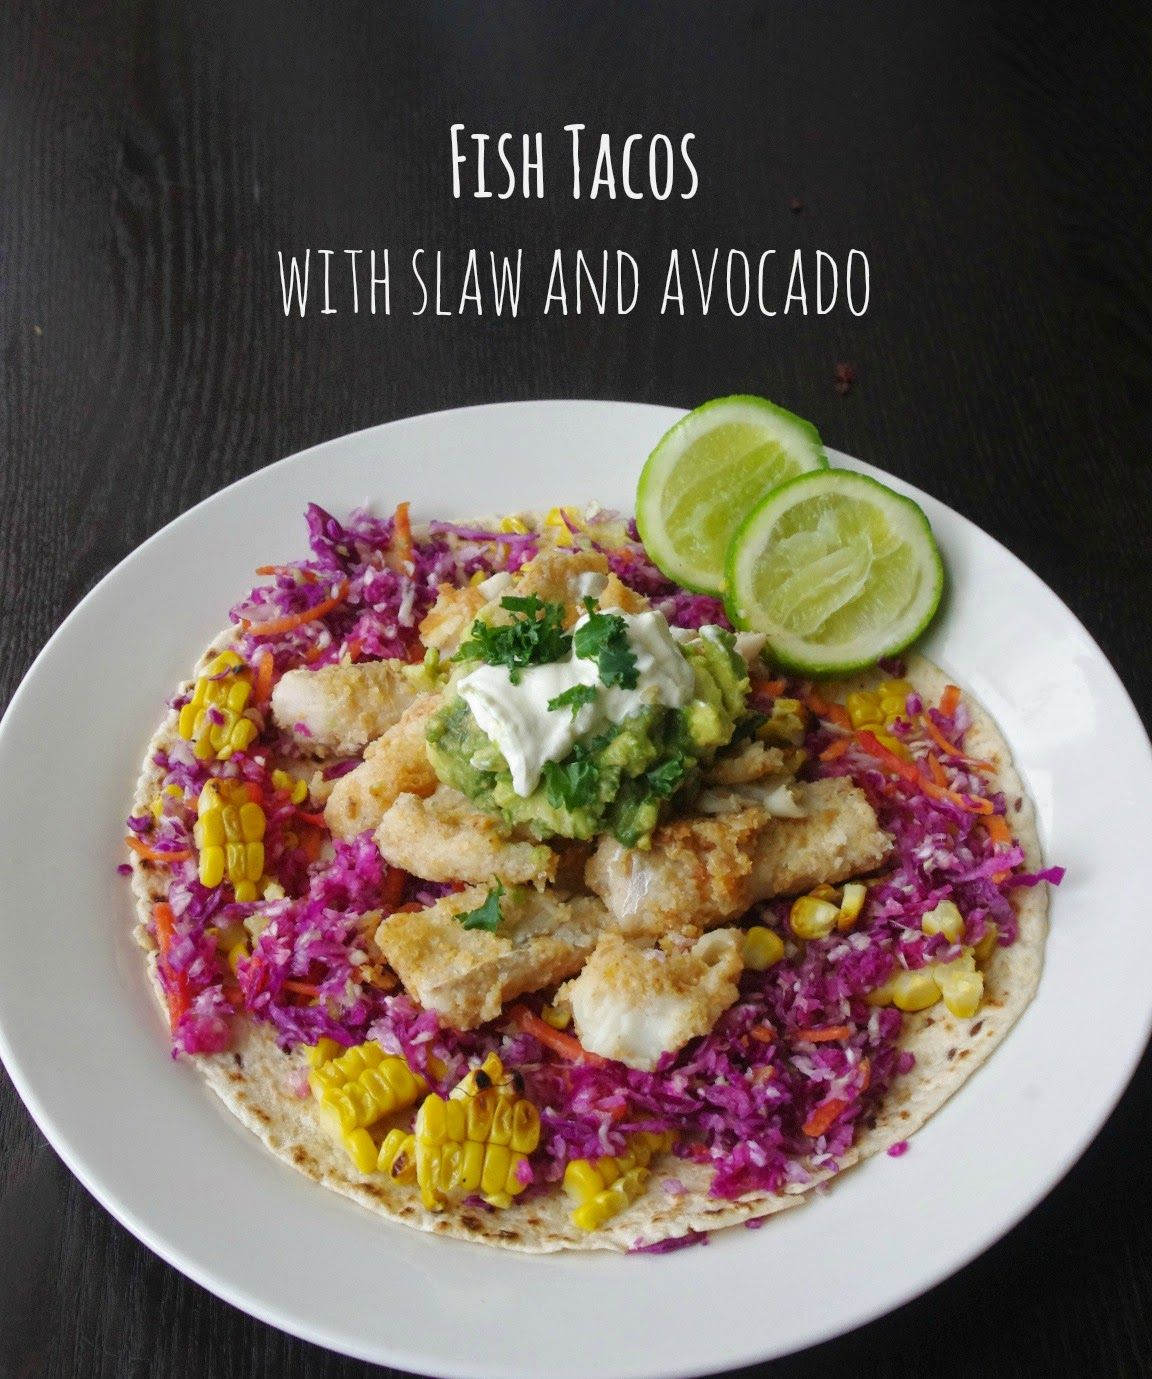 17 best ideas about fish taco slaw on pinterest fish for Fried fish tacos recipe